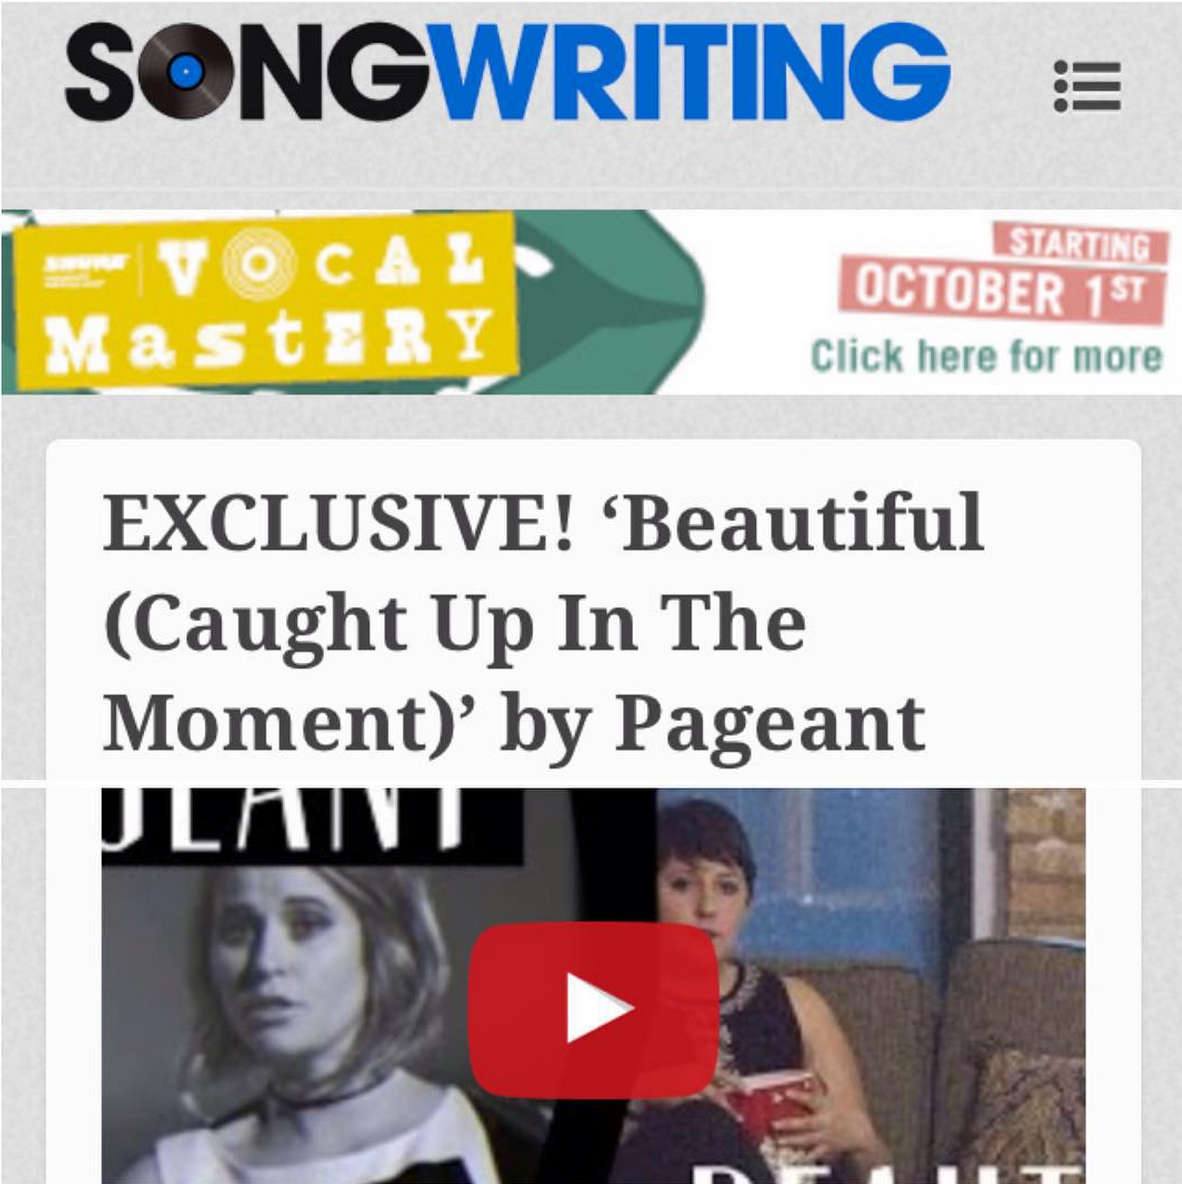 "Songwriting Magazine ""EXCLUSIVE! 'Beautiful (Caught Up in the Moment)' by Pageant"" Oct 12, 2015"